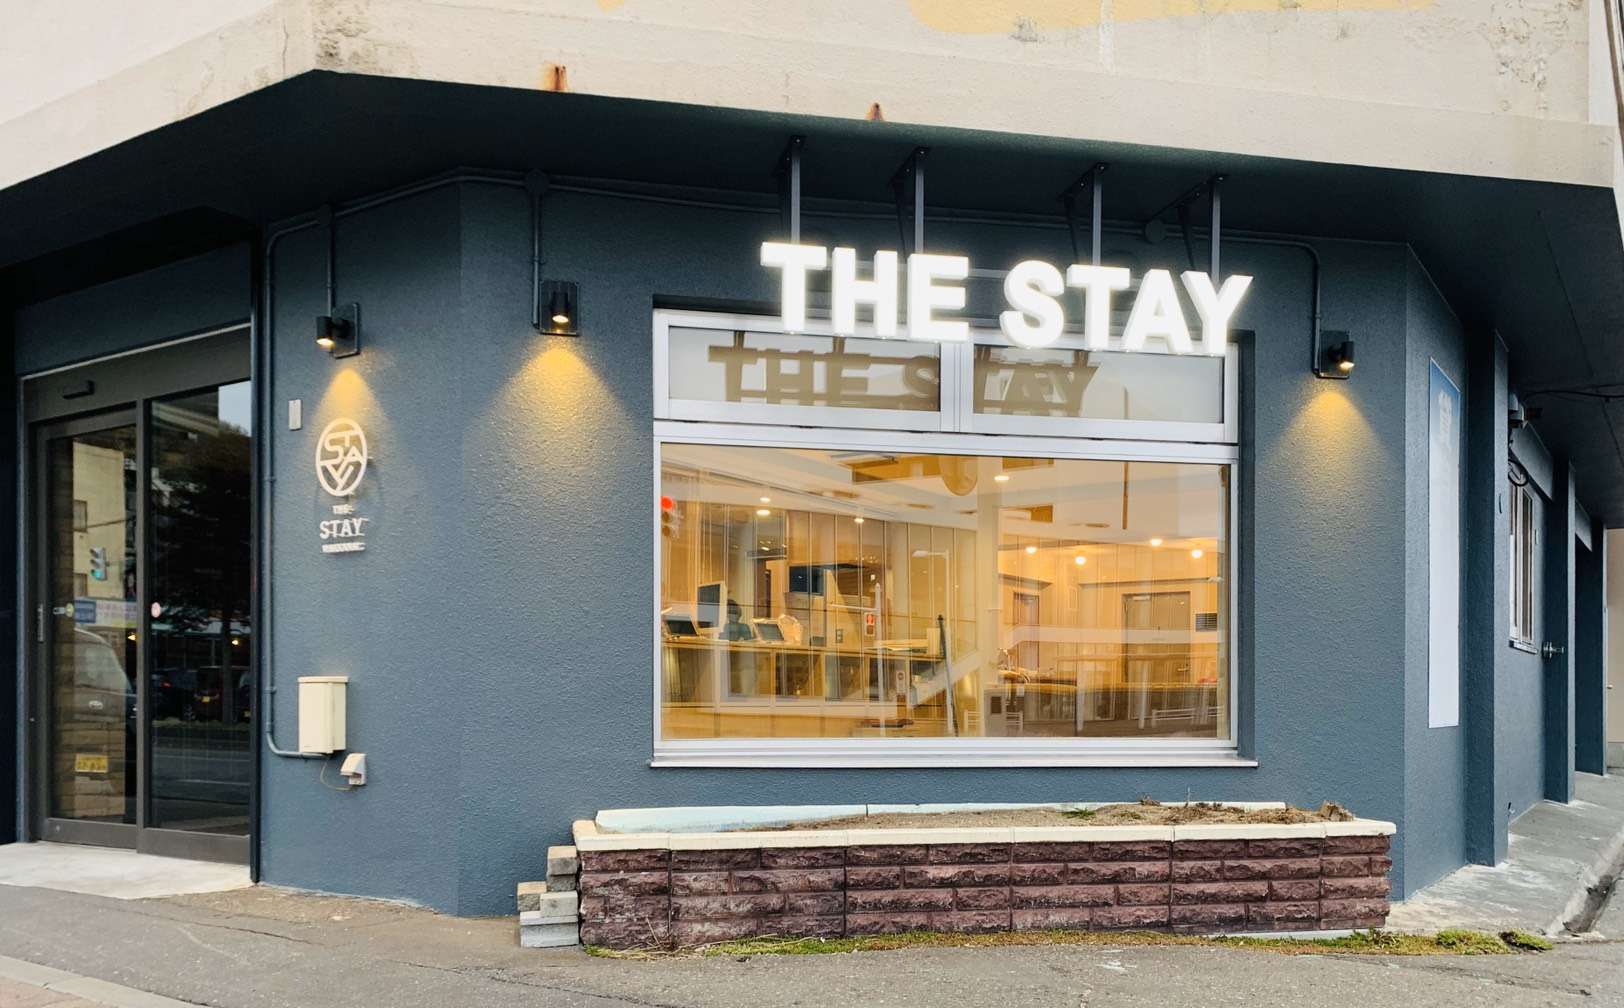 THE STAY WAKKANAI